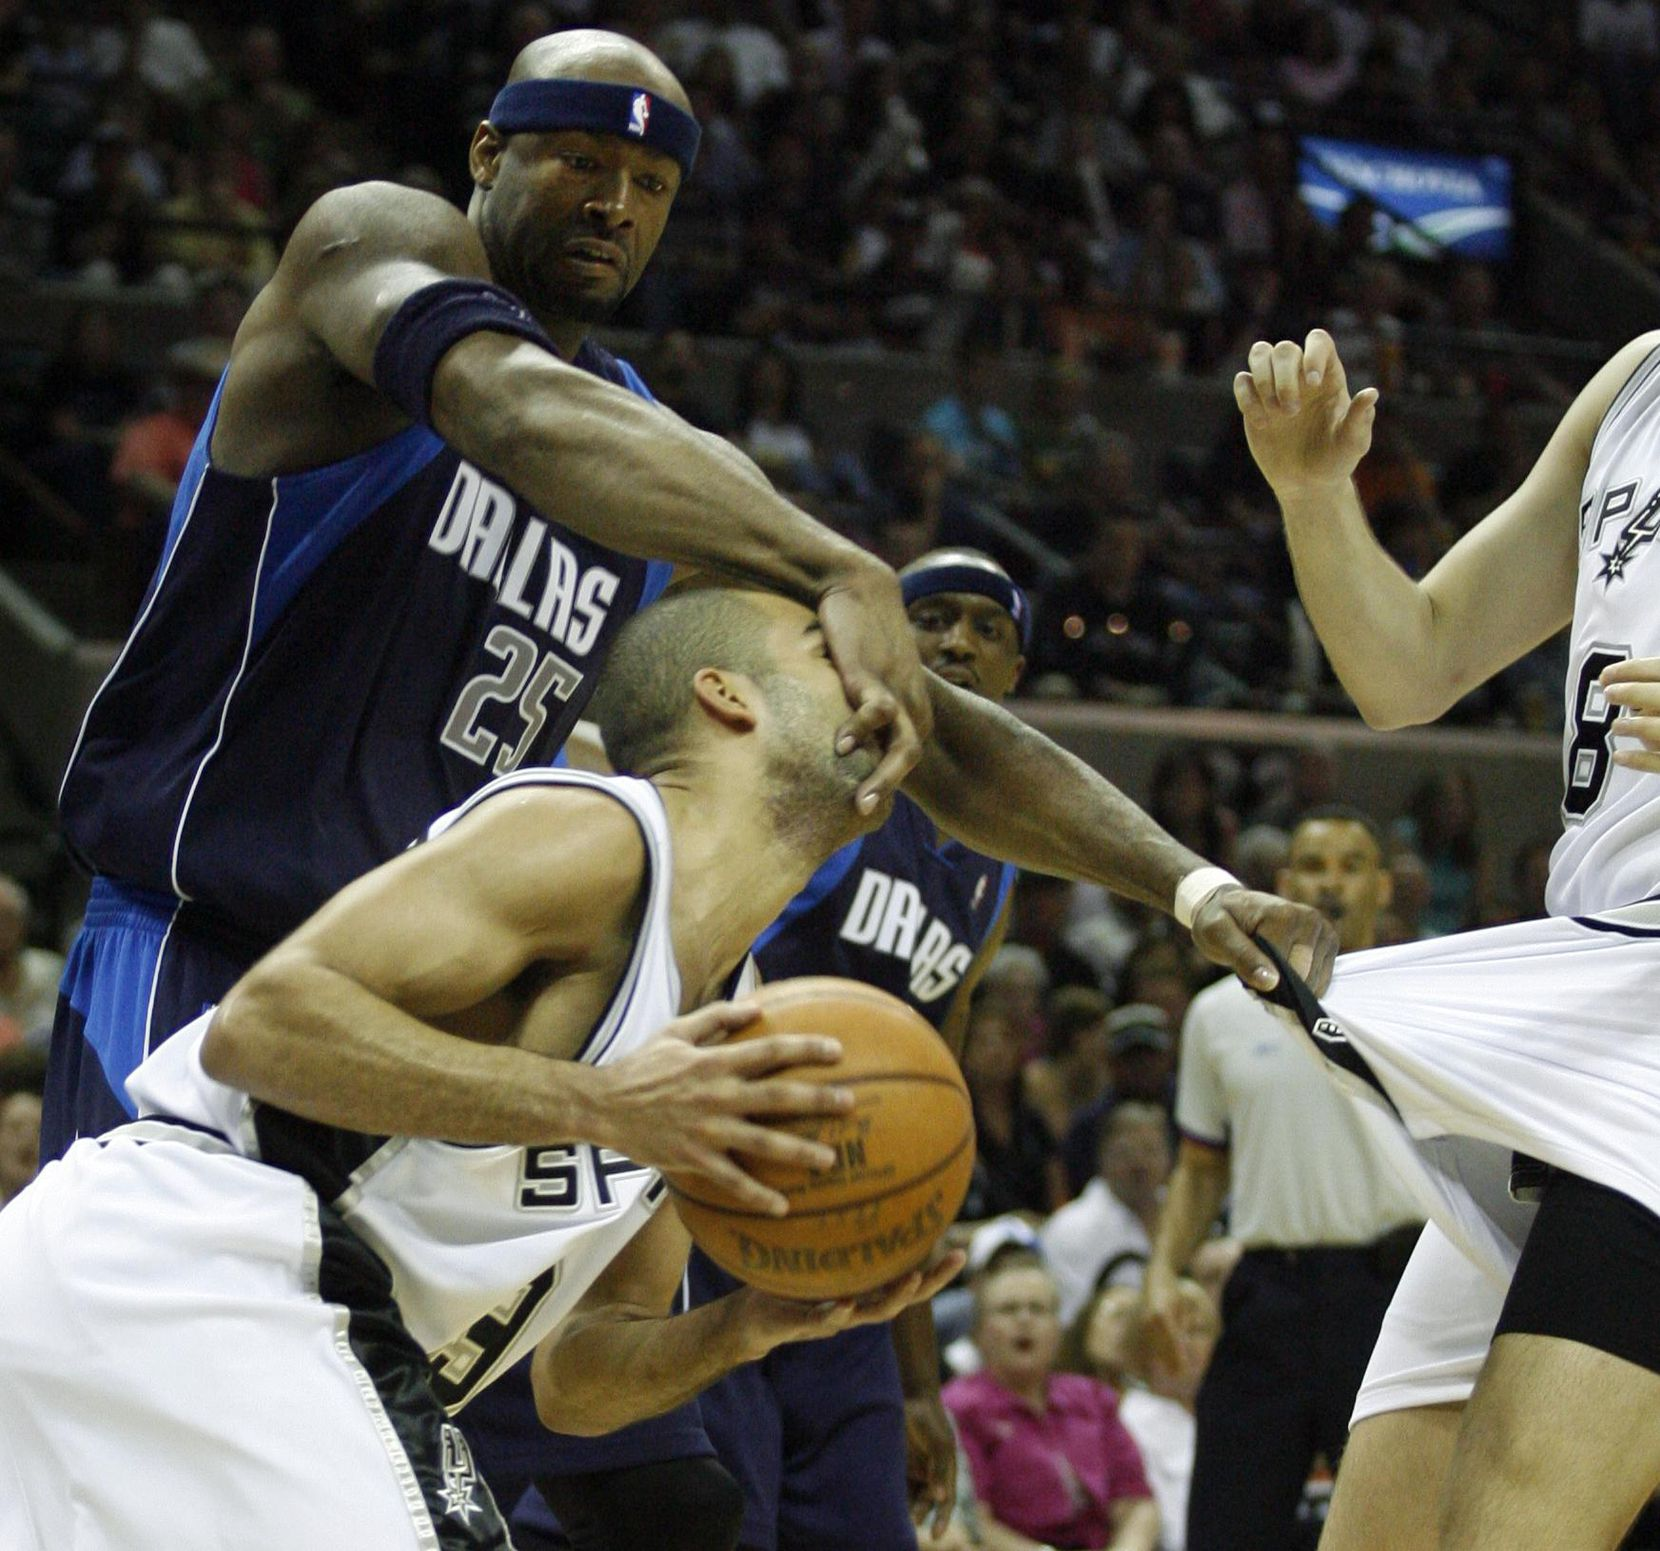 Dallas Mavericks Erick Dampier (25) grabs the face of San Antonio Spurs Tony Parker (9) and the shorts of Rasho Nesterovic (8) during the second half of game 1 of the Western Conference Playoffs Semifinals Playoffs game 1 in San Antonio on Sunday, May 7, 2006. The Spurs defeated the Mavericks 87-85.